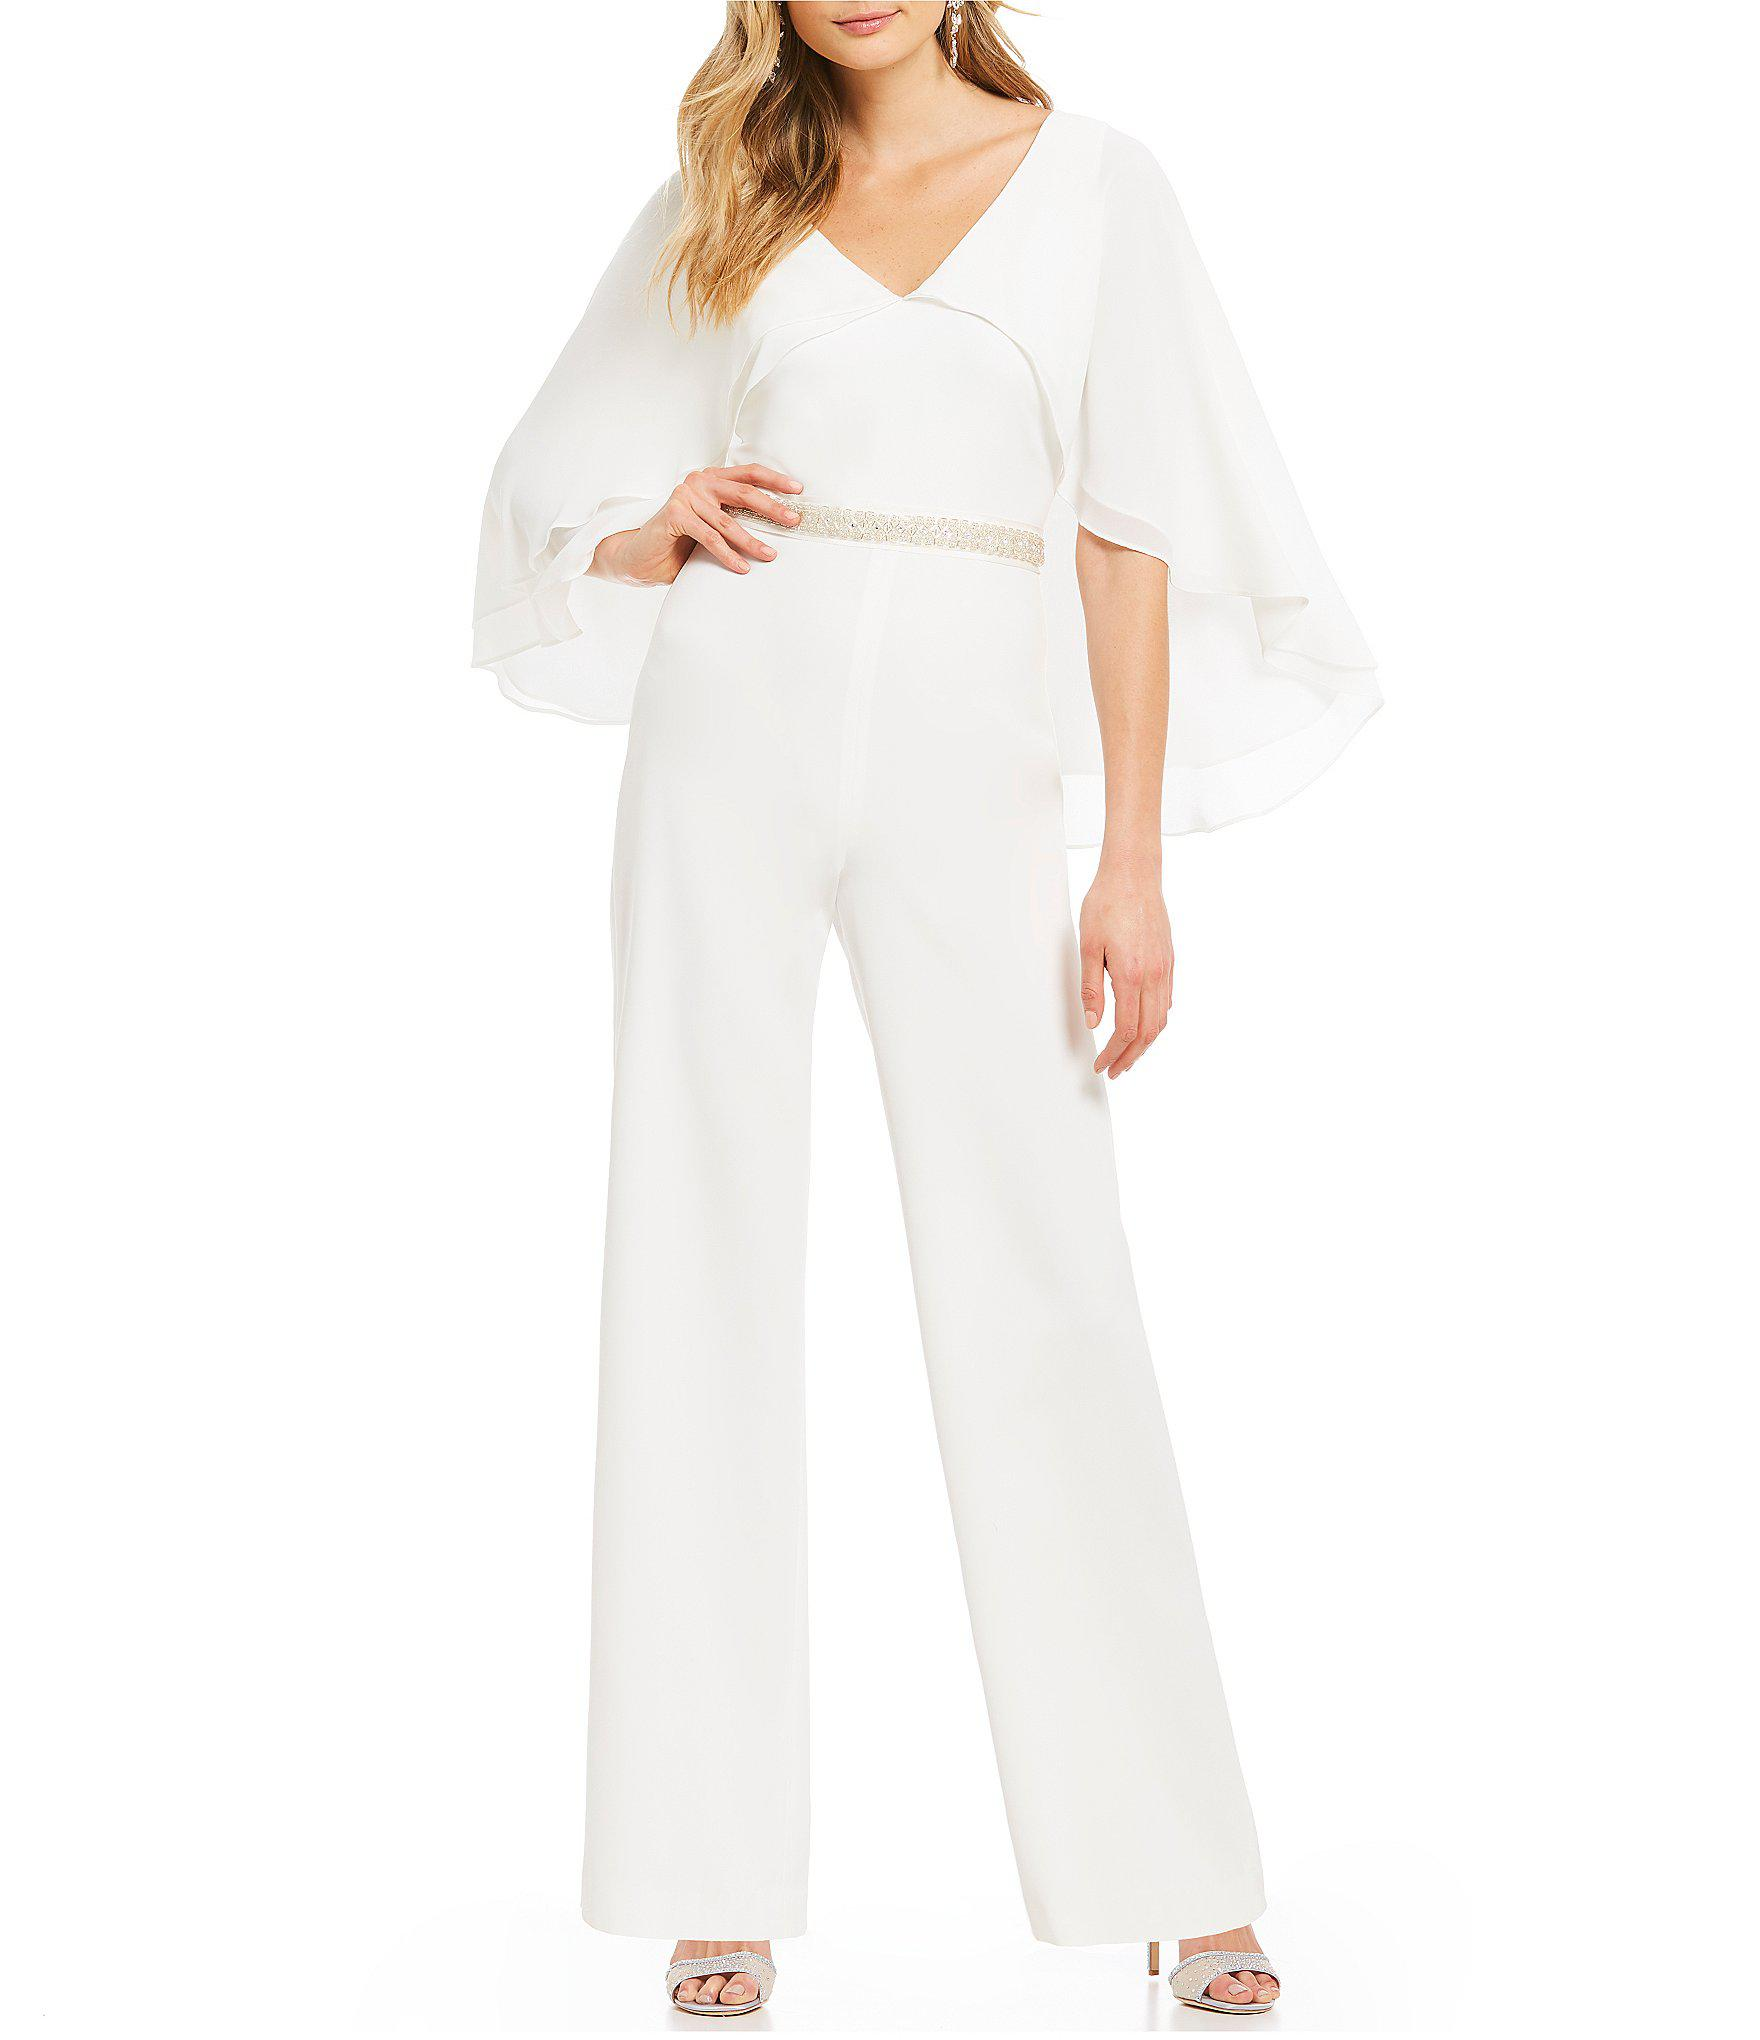 f489cf47959 Lyst - Belle By Badgley Mischka Cape Sleeve Jumpsuit in White